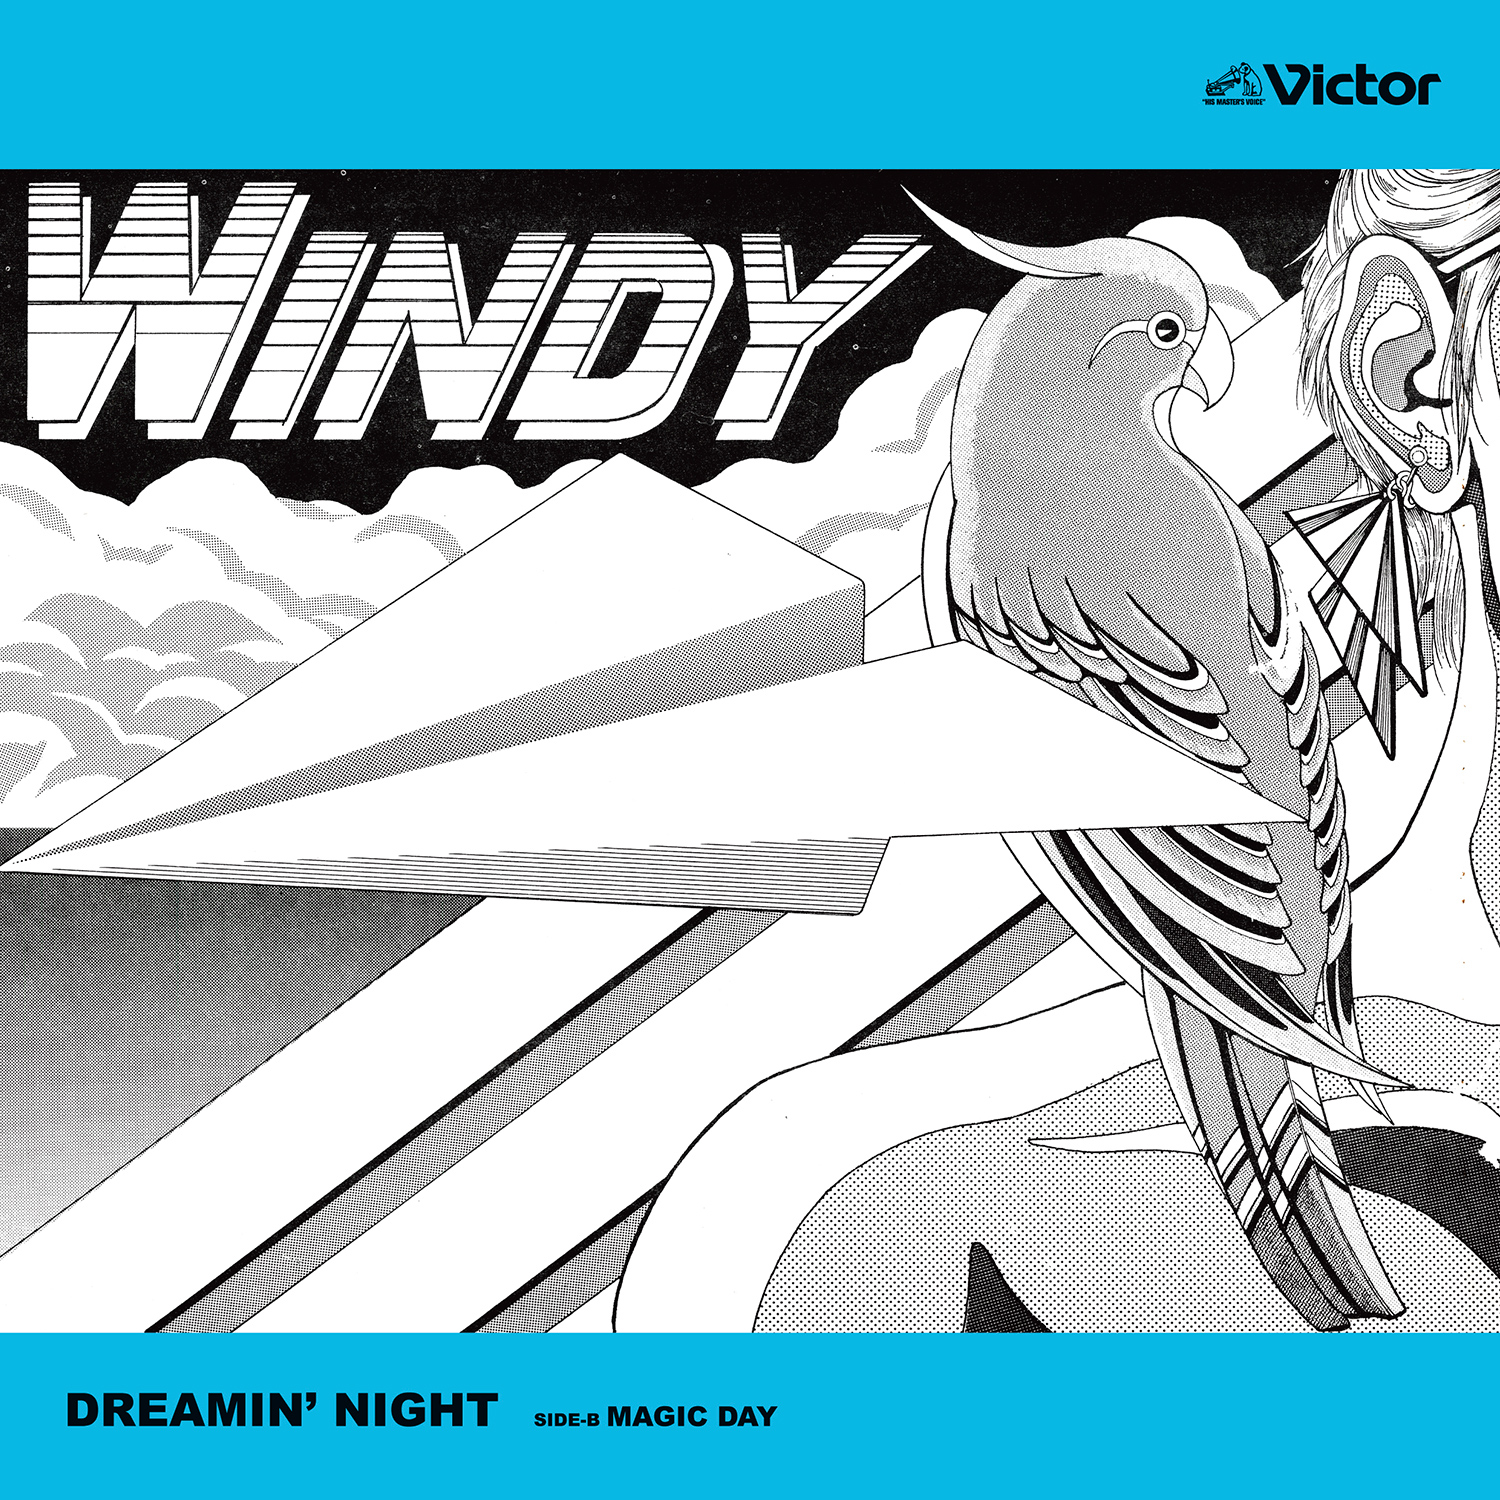 053 WINDY Dreamin' Night / Magic Day